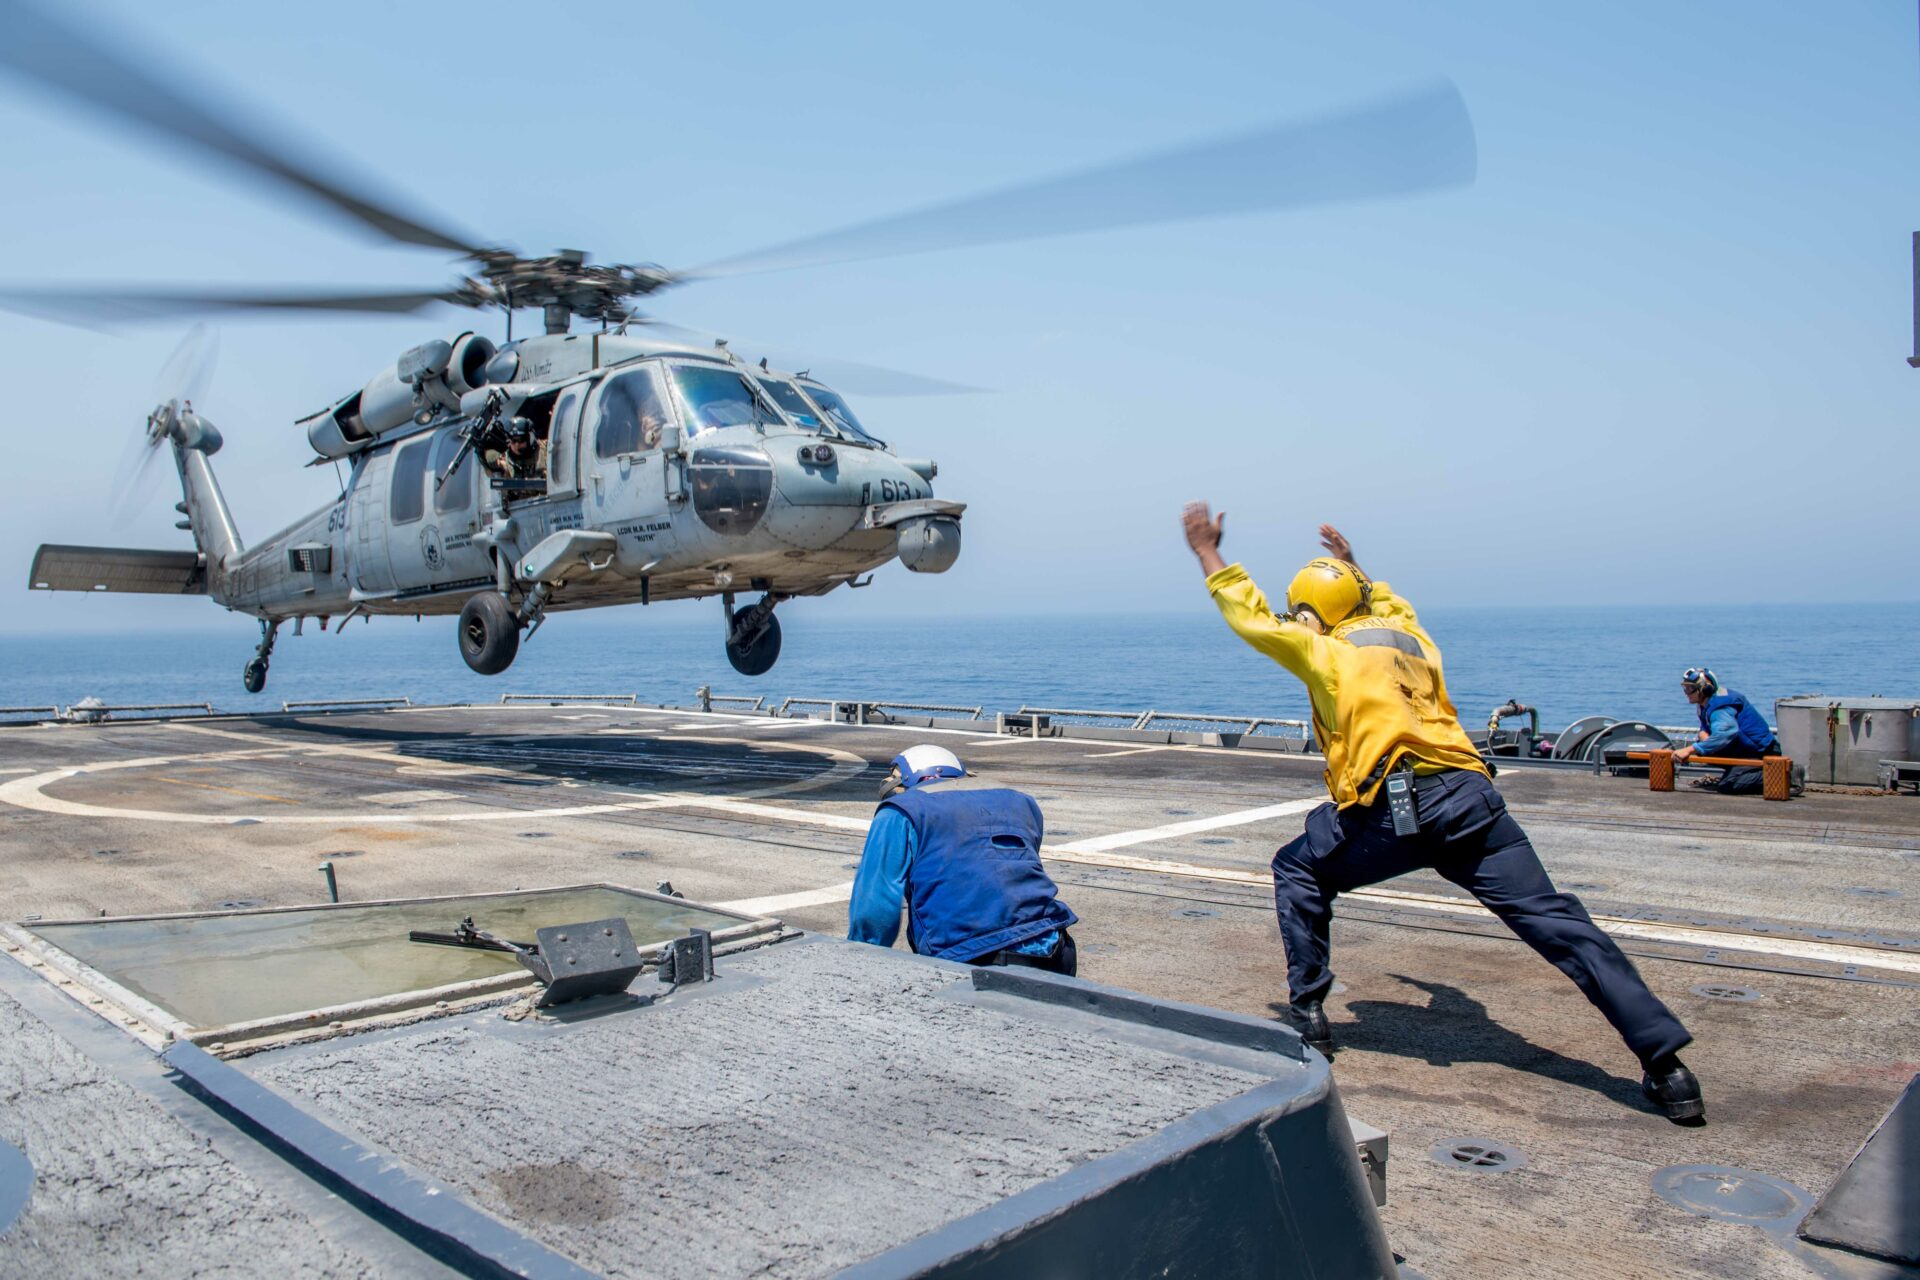 "170805-N-VR594-0287 ARABIAN GULF (Aug. 5, 2017) Rear Adm. Bill Byrne, commander of Carrier Strike Group 11, departs the Ticonderoga-class guided-missile cruiser USS Princeton (CG 59) on an MH-60S Sea Hawk helicopter assigned to the ""Eightballers"" of Helicopter Combatant Strike Squadron (HSC) 8. Princeton is deployed to the U.S. 5th Fleet area of operations in support of maritime security operations designed to reassure allies and partners, and preserve the freedom of navigation and the free flow of commerce in the region. (U.S. Navy photo by Mass Communication Specialist 3rd Class Kelsey J. Hockenberger/Released)"